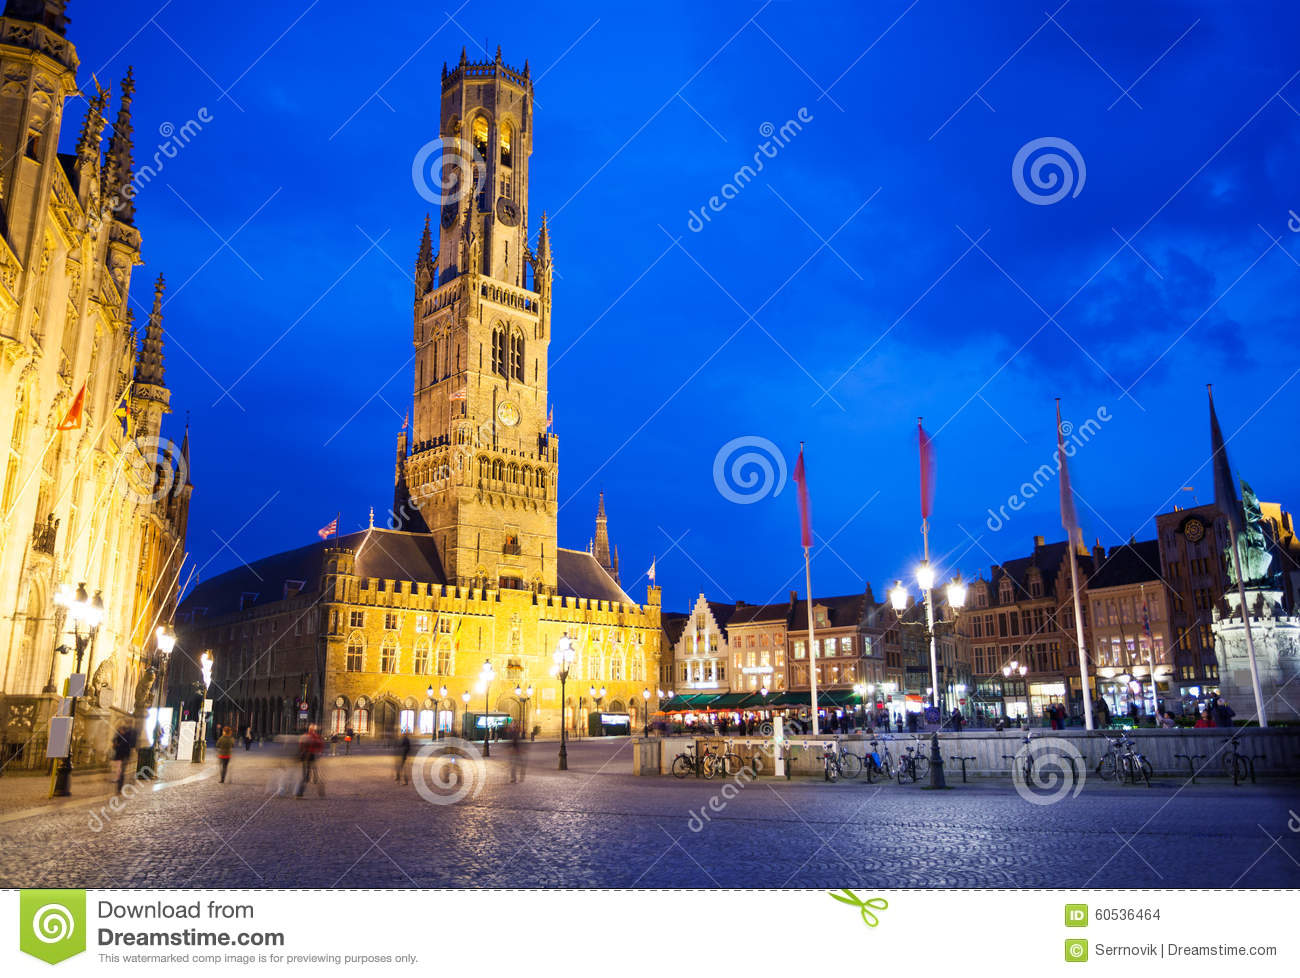 Belfry of Bruges and Grote Markt at night